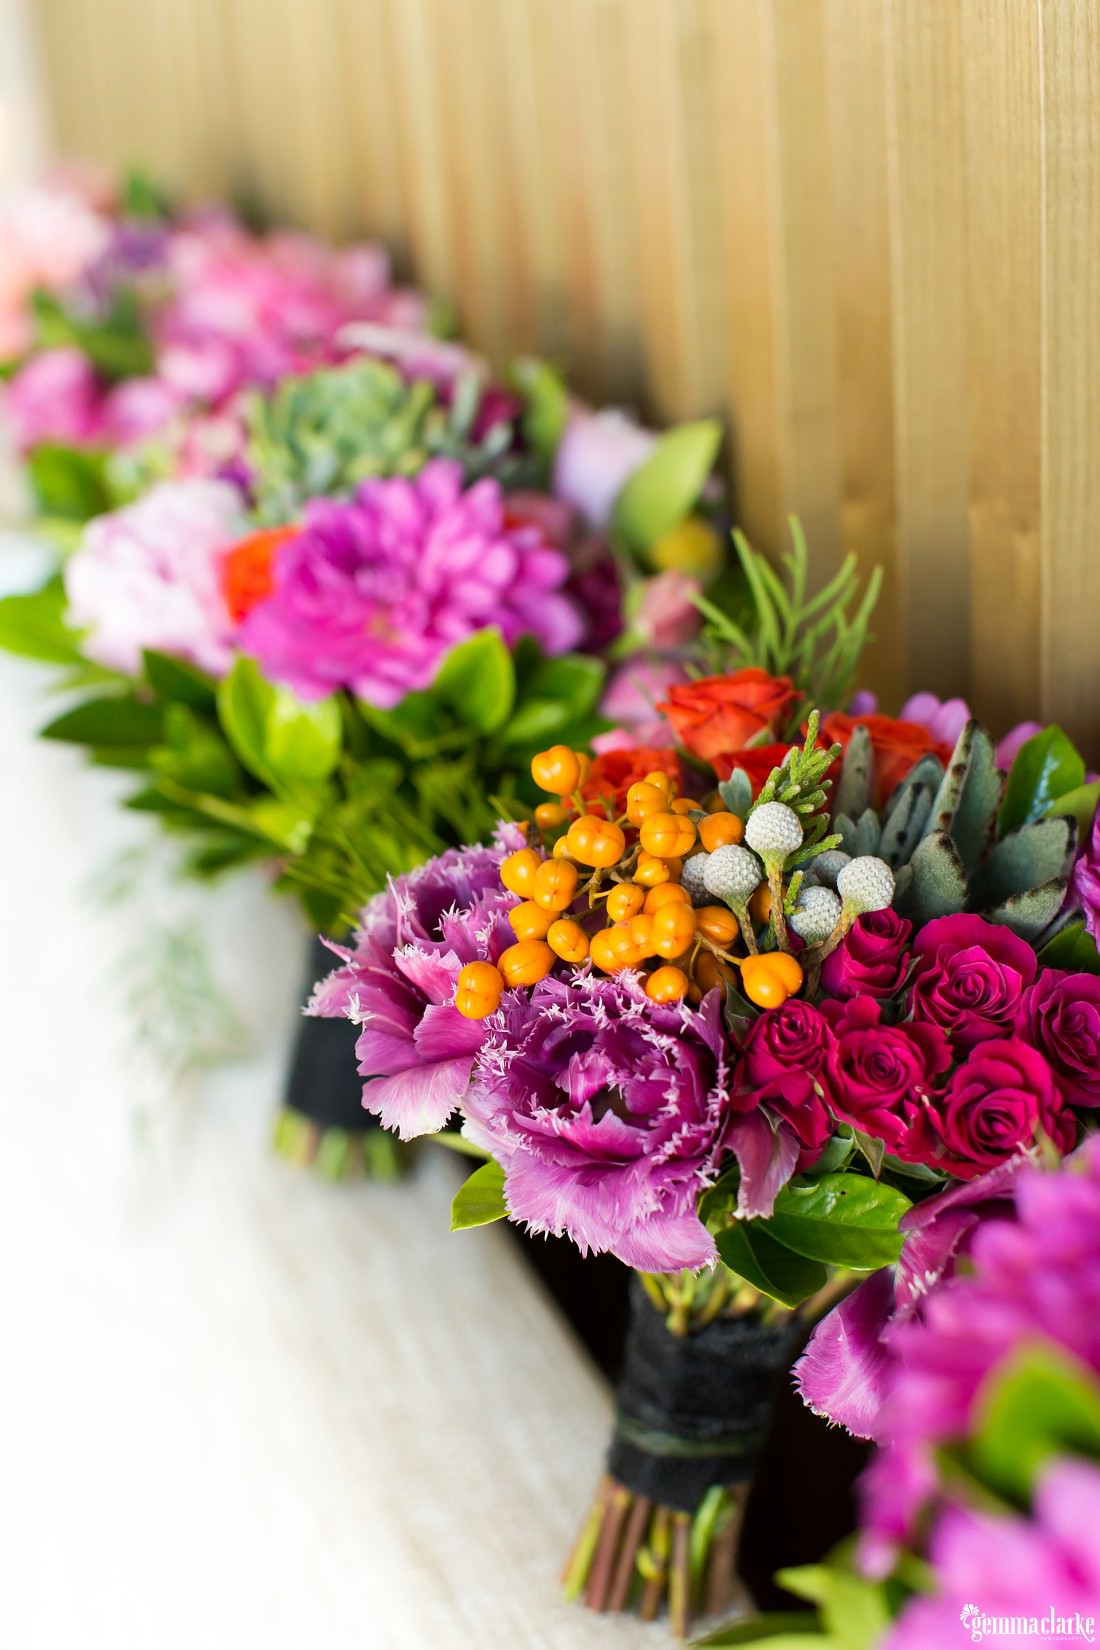 A closeup of some bouquets of pink and purple flowers